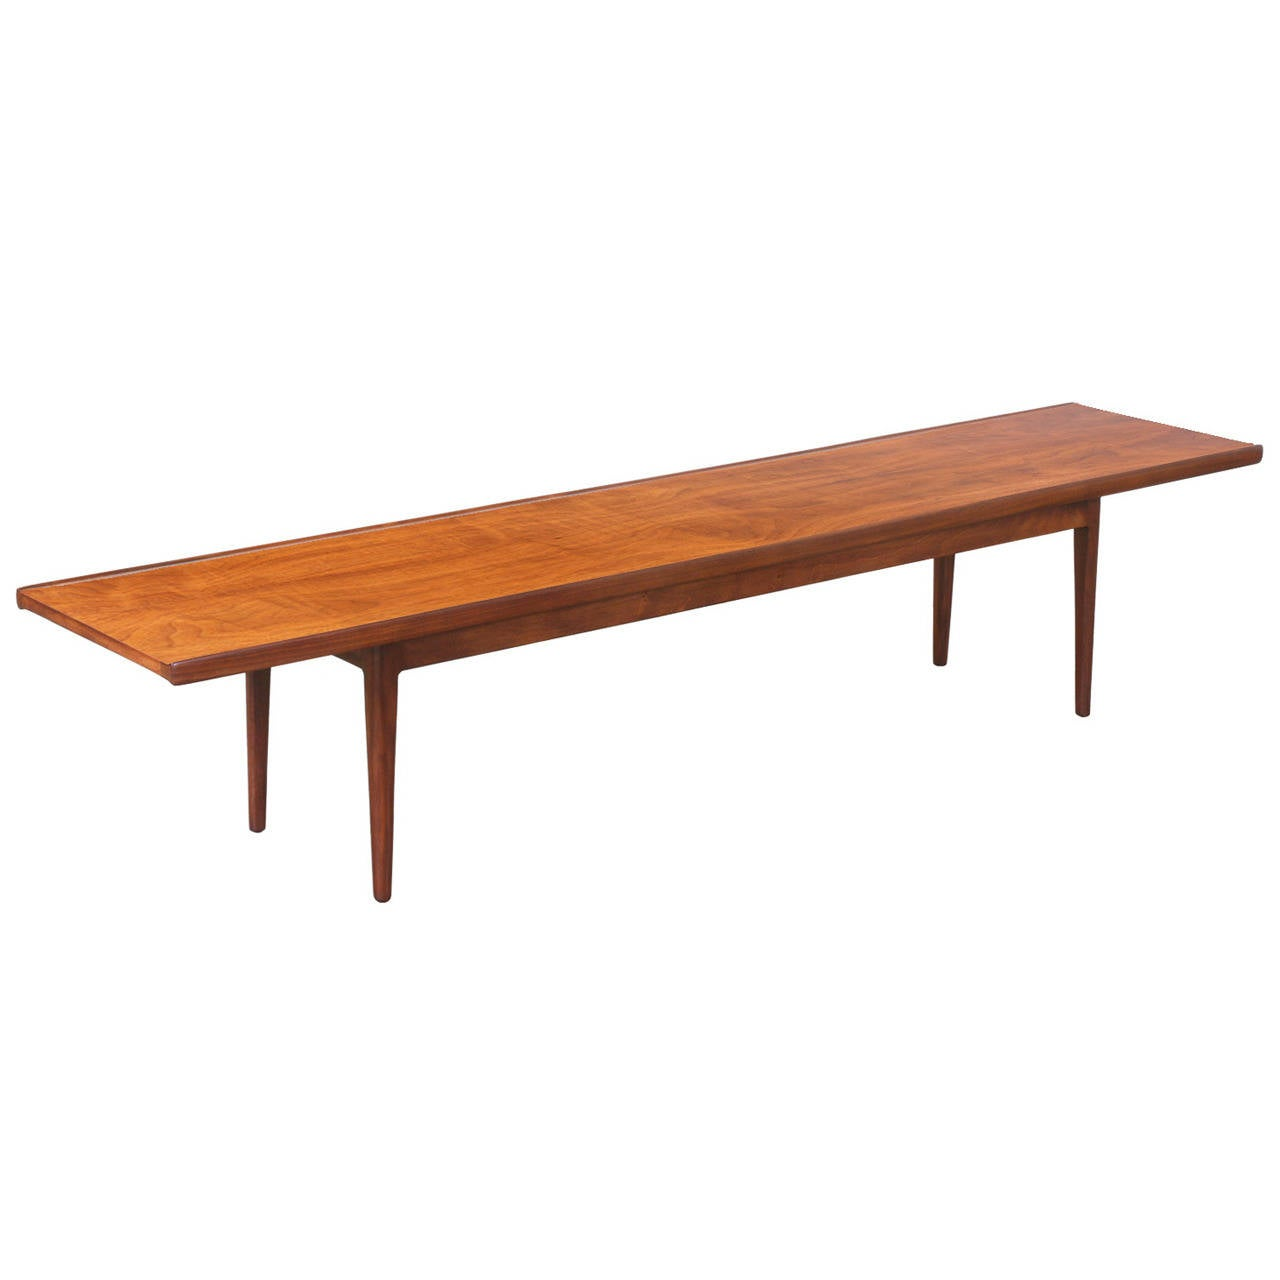 Stewart Mcdougall And Kipp Stewart Bench Coffee Table For Drexel At 1stdibs